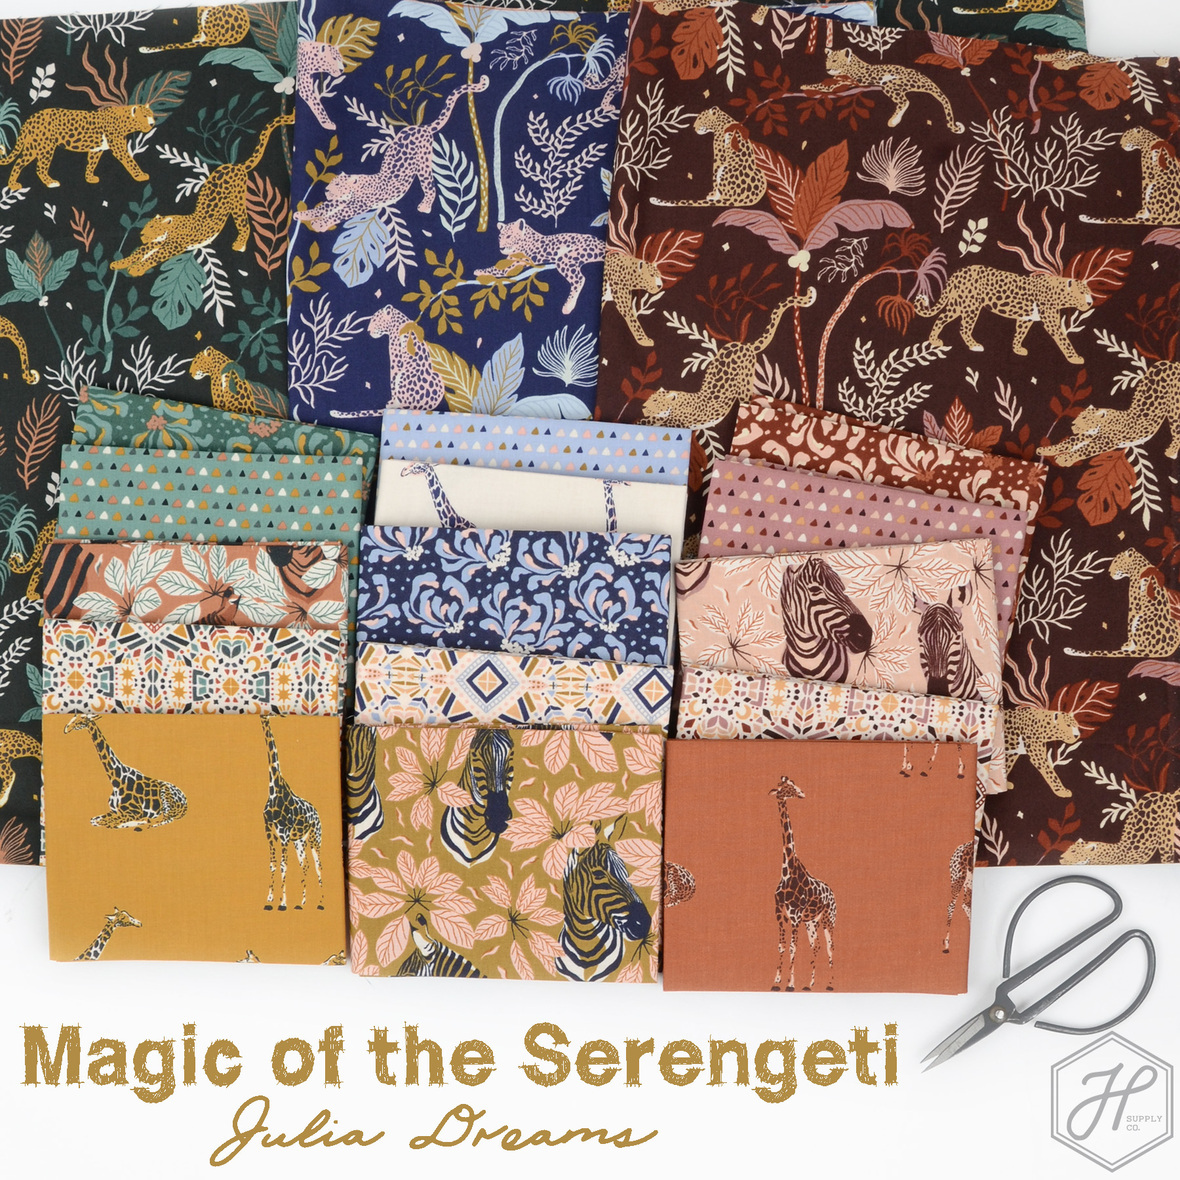 Magic of the Serengeti Julia Dreams fabric for Cotton and Steel at Hawthorne Supply Co